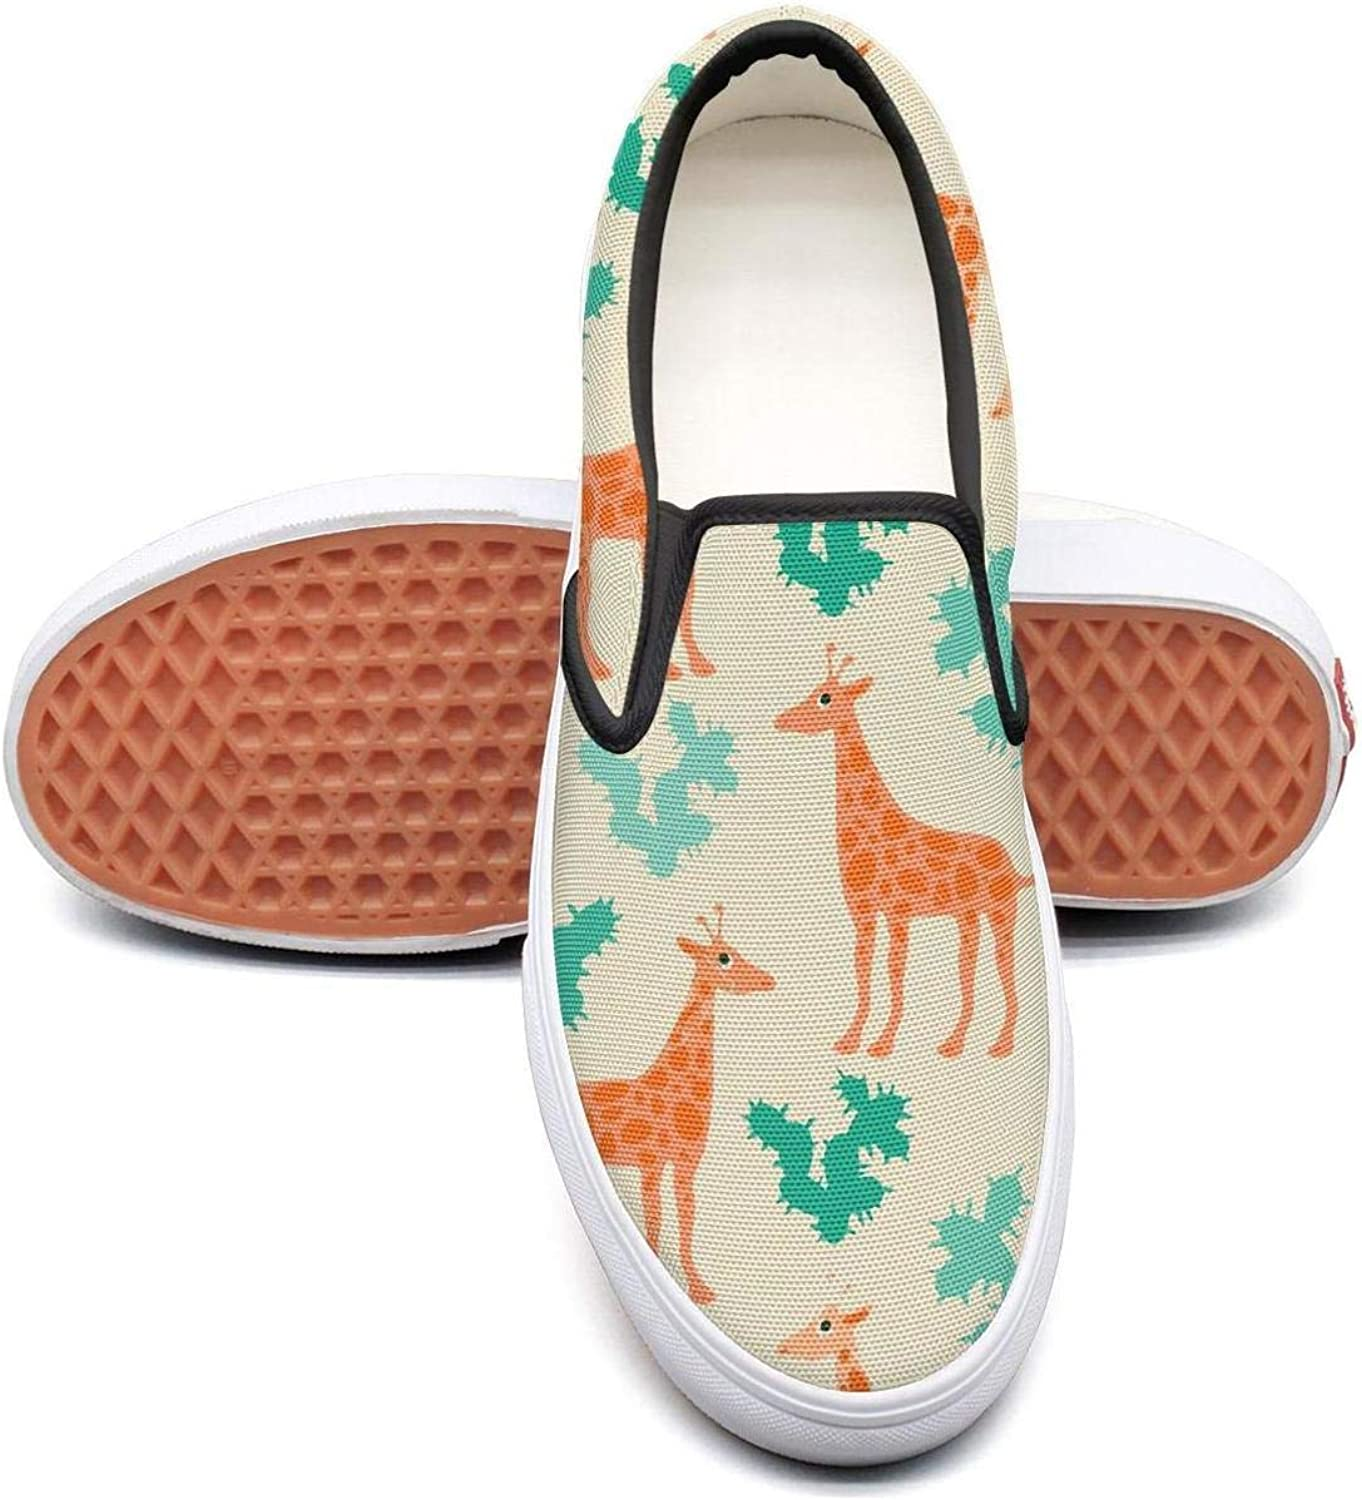 SOFIE MARTIN Giraffes and Cactus Cool Pretty Women Canvas Sneakers Low Top Lightweight Air Permeable